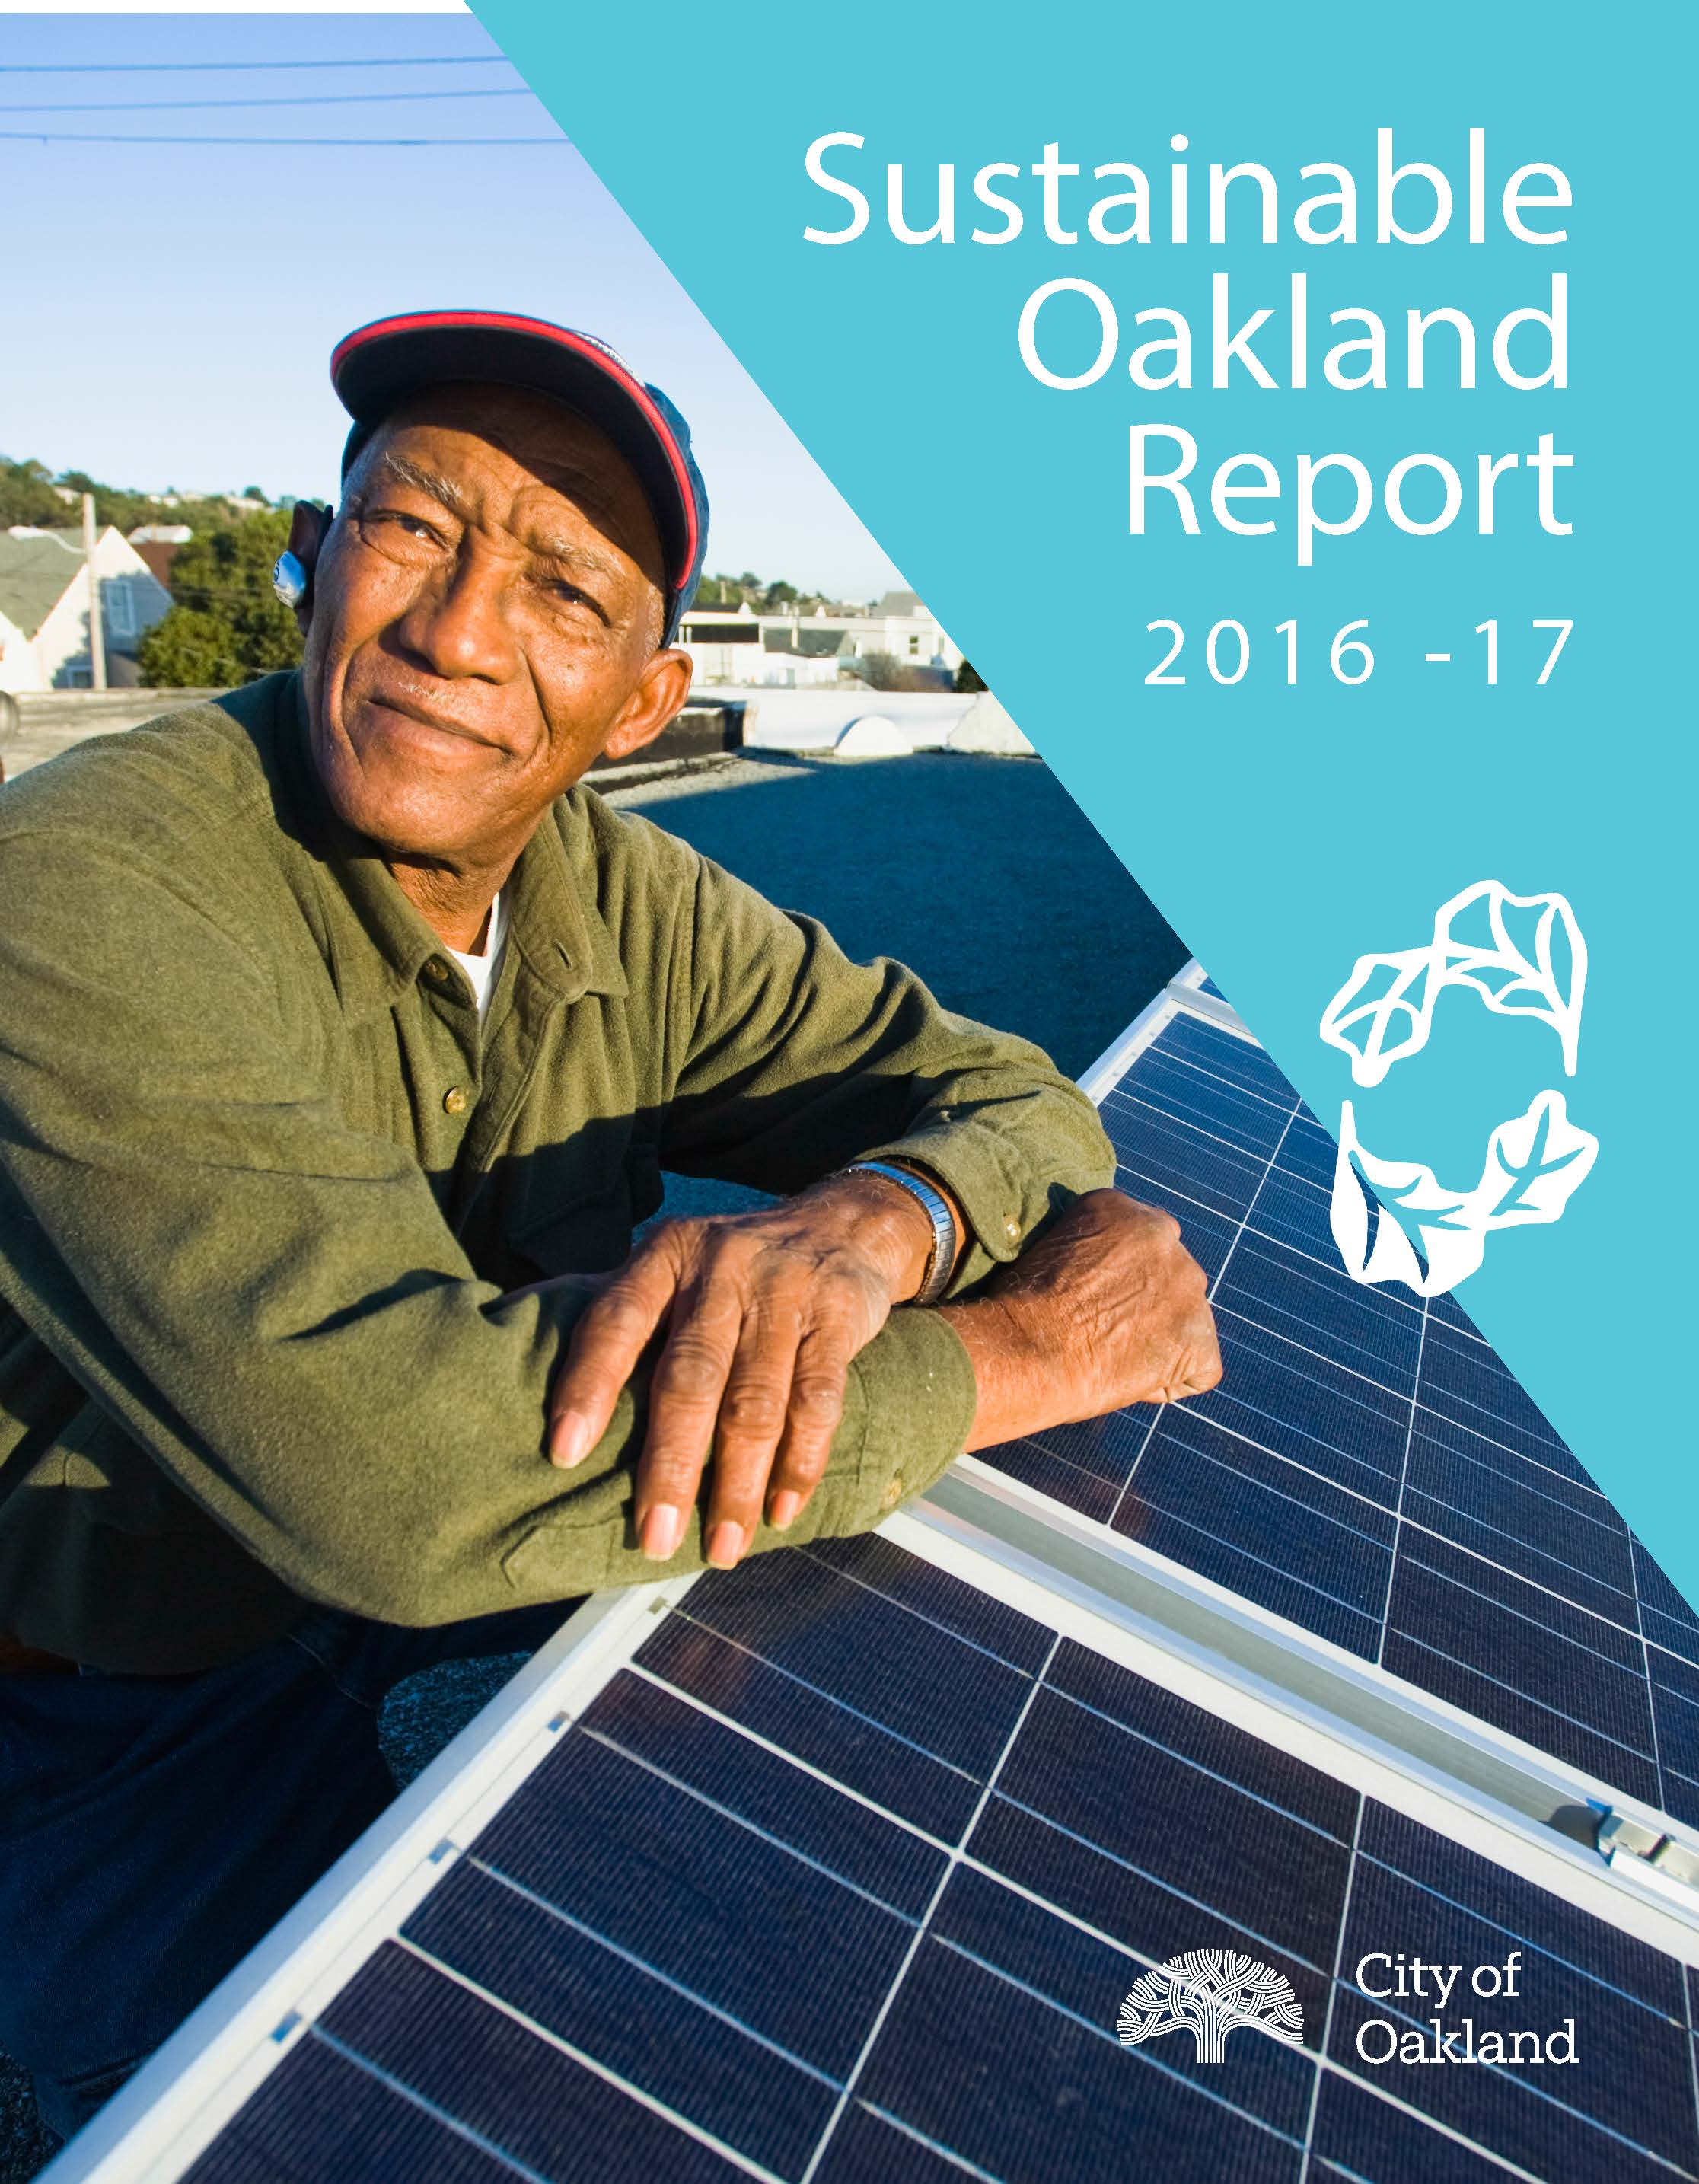 Sustainable Oakland 2013-14 Report Cover JPEG